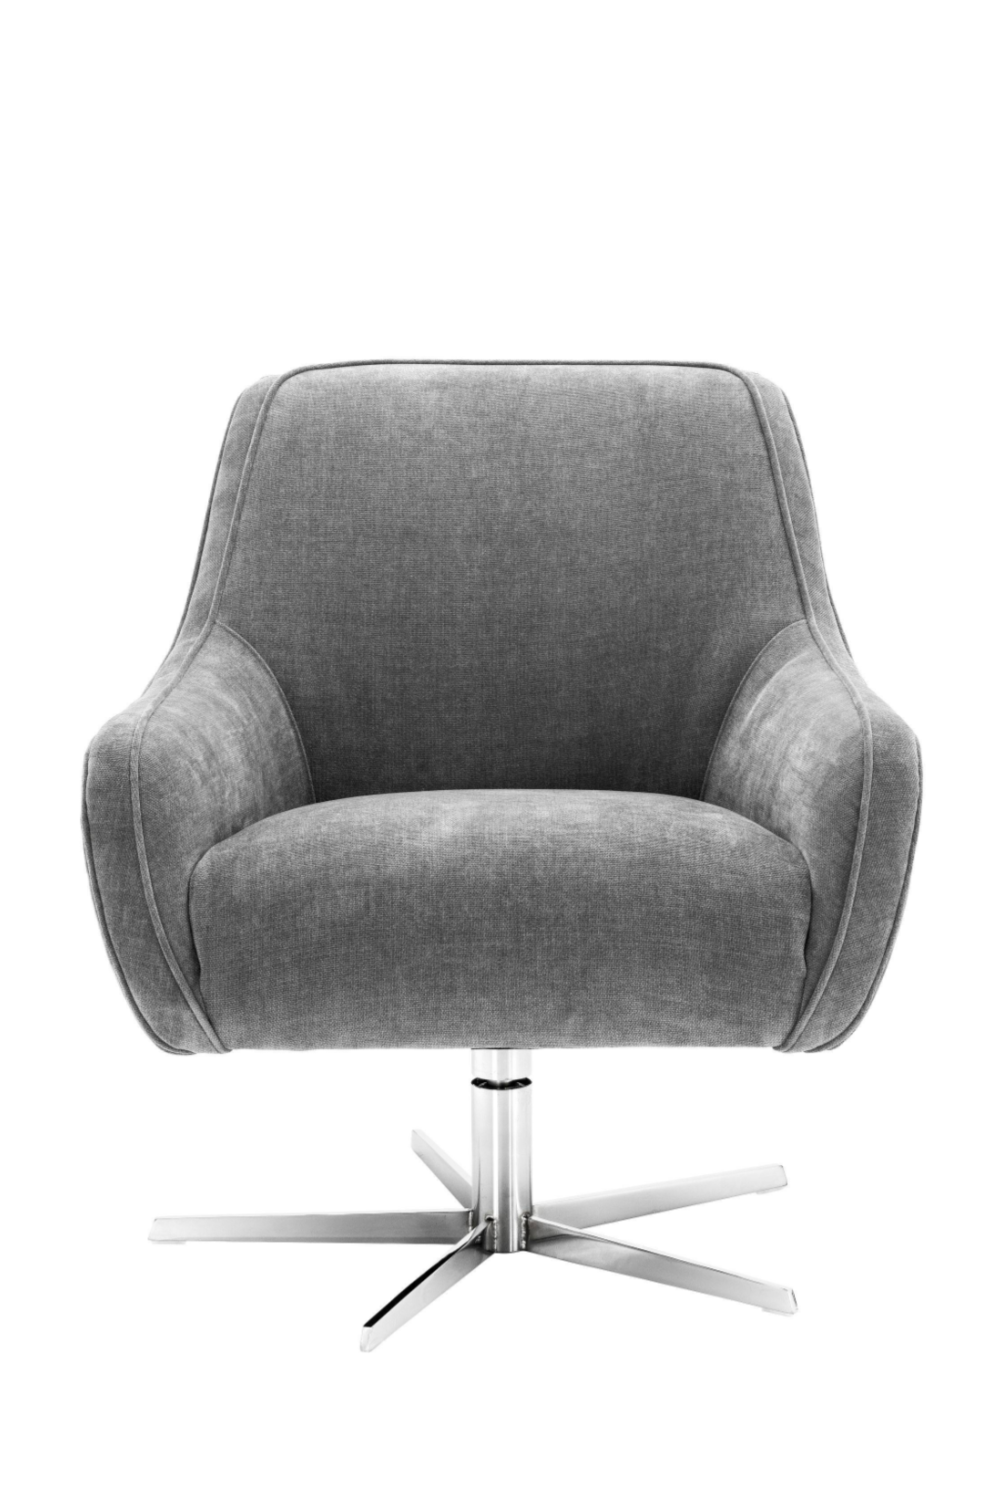 Gray Upholstered Swivel Chair | Eichholtz Serena | OROA Furniture